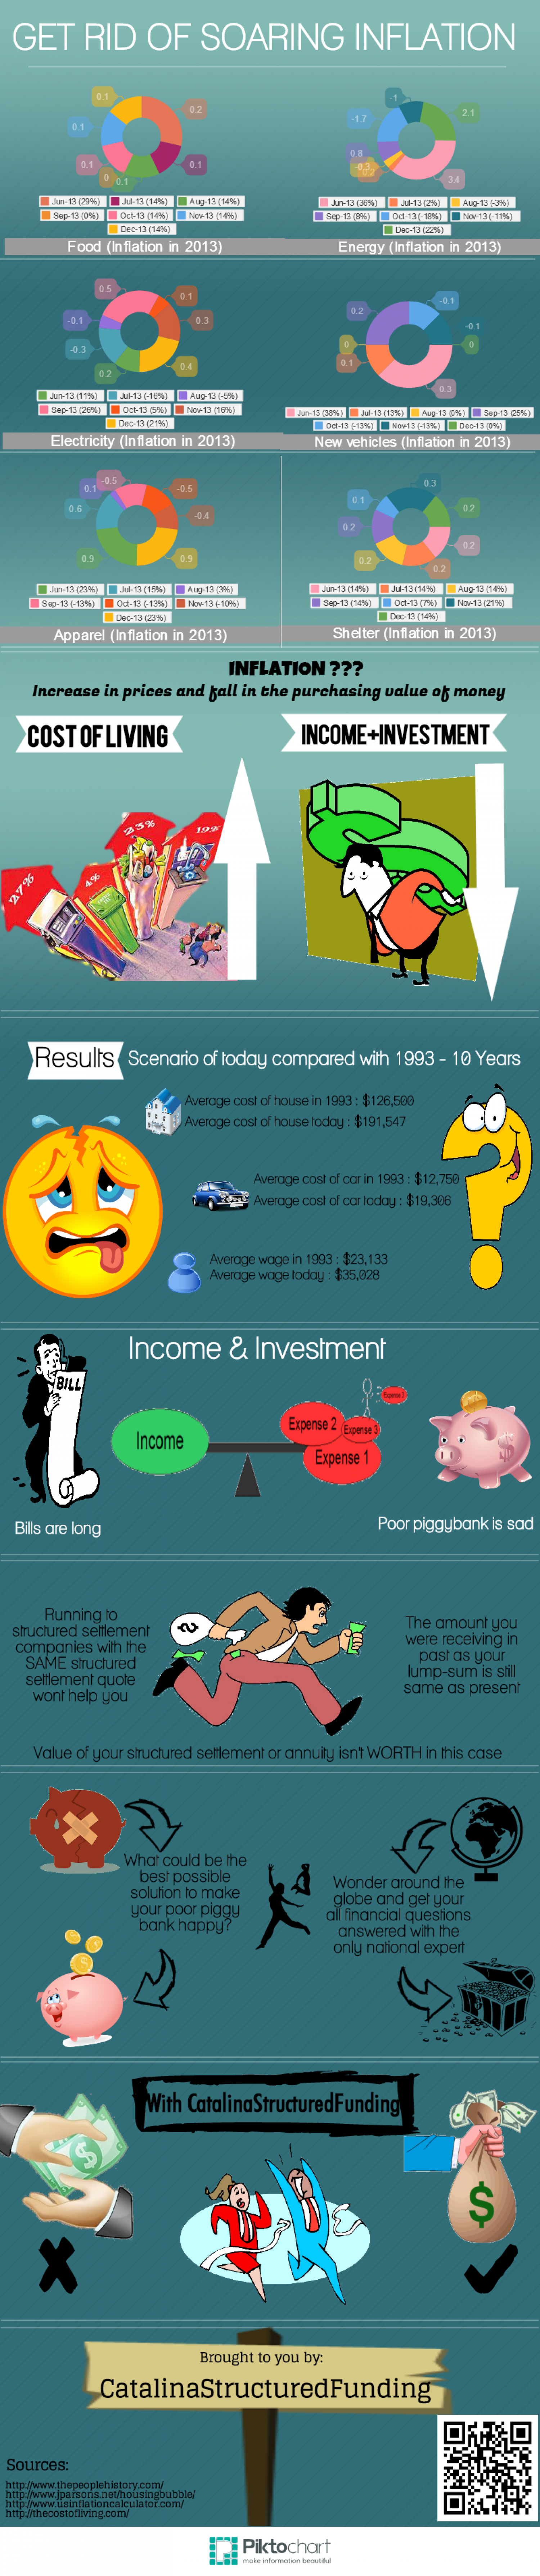 GET RID OF SOARING INFLATION Infographic